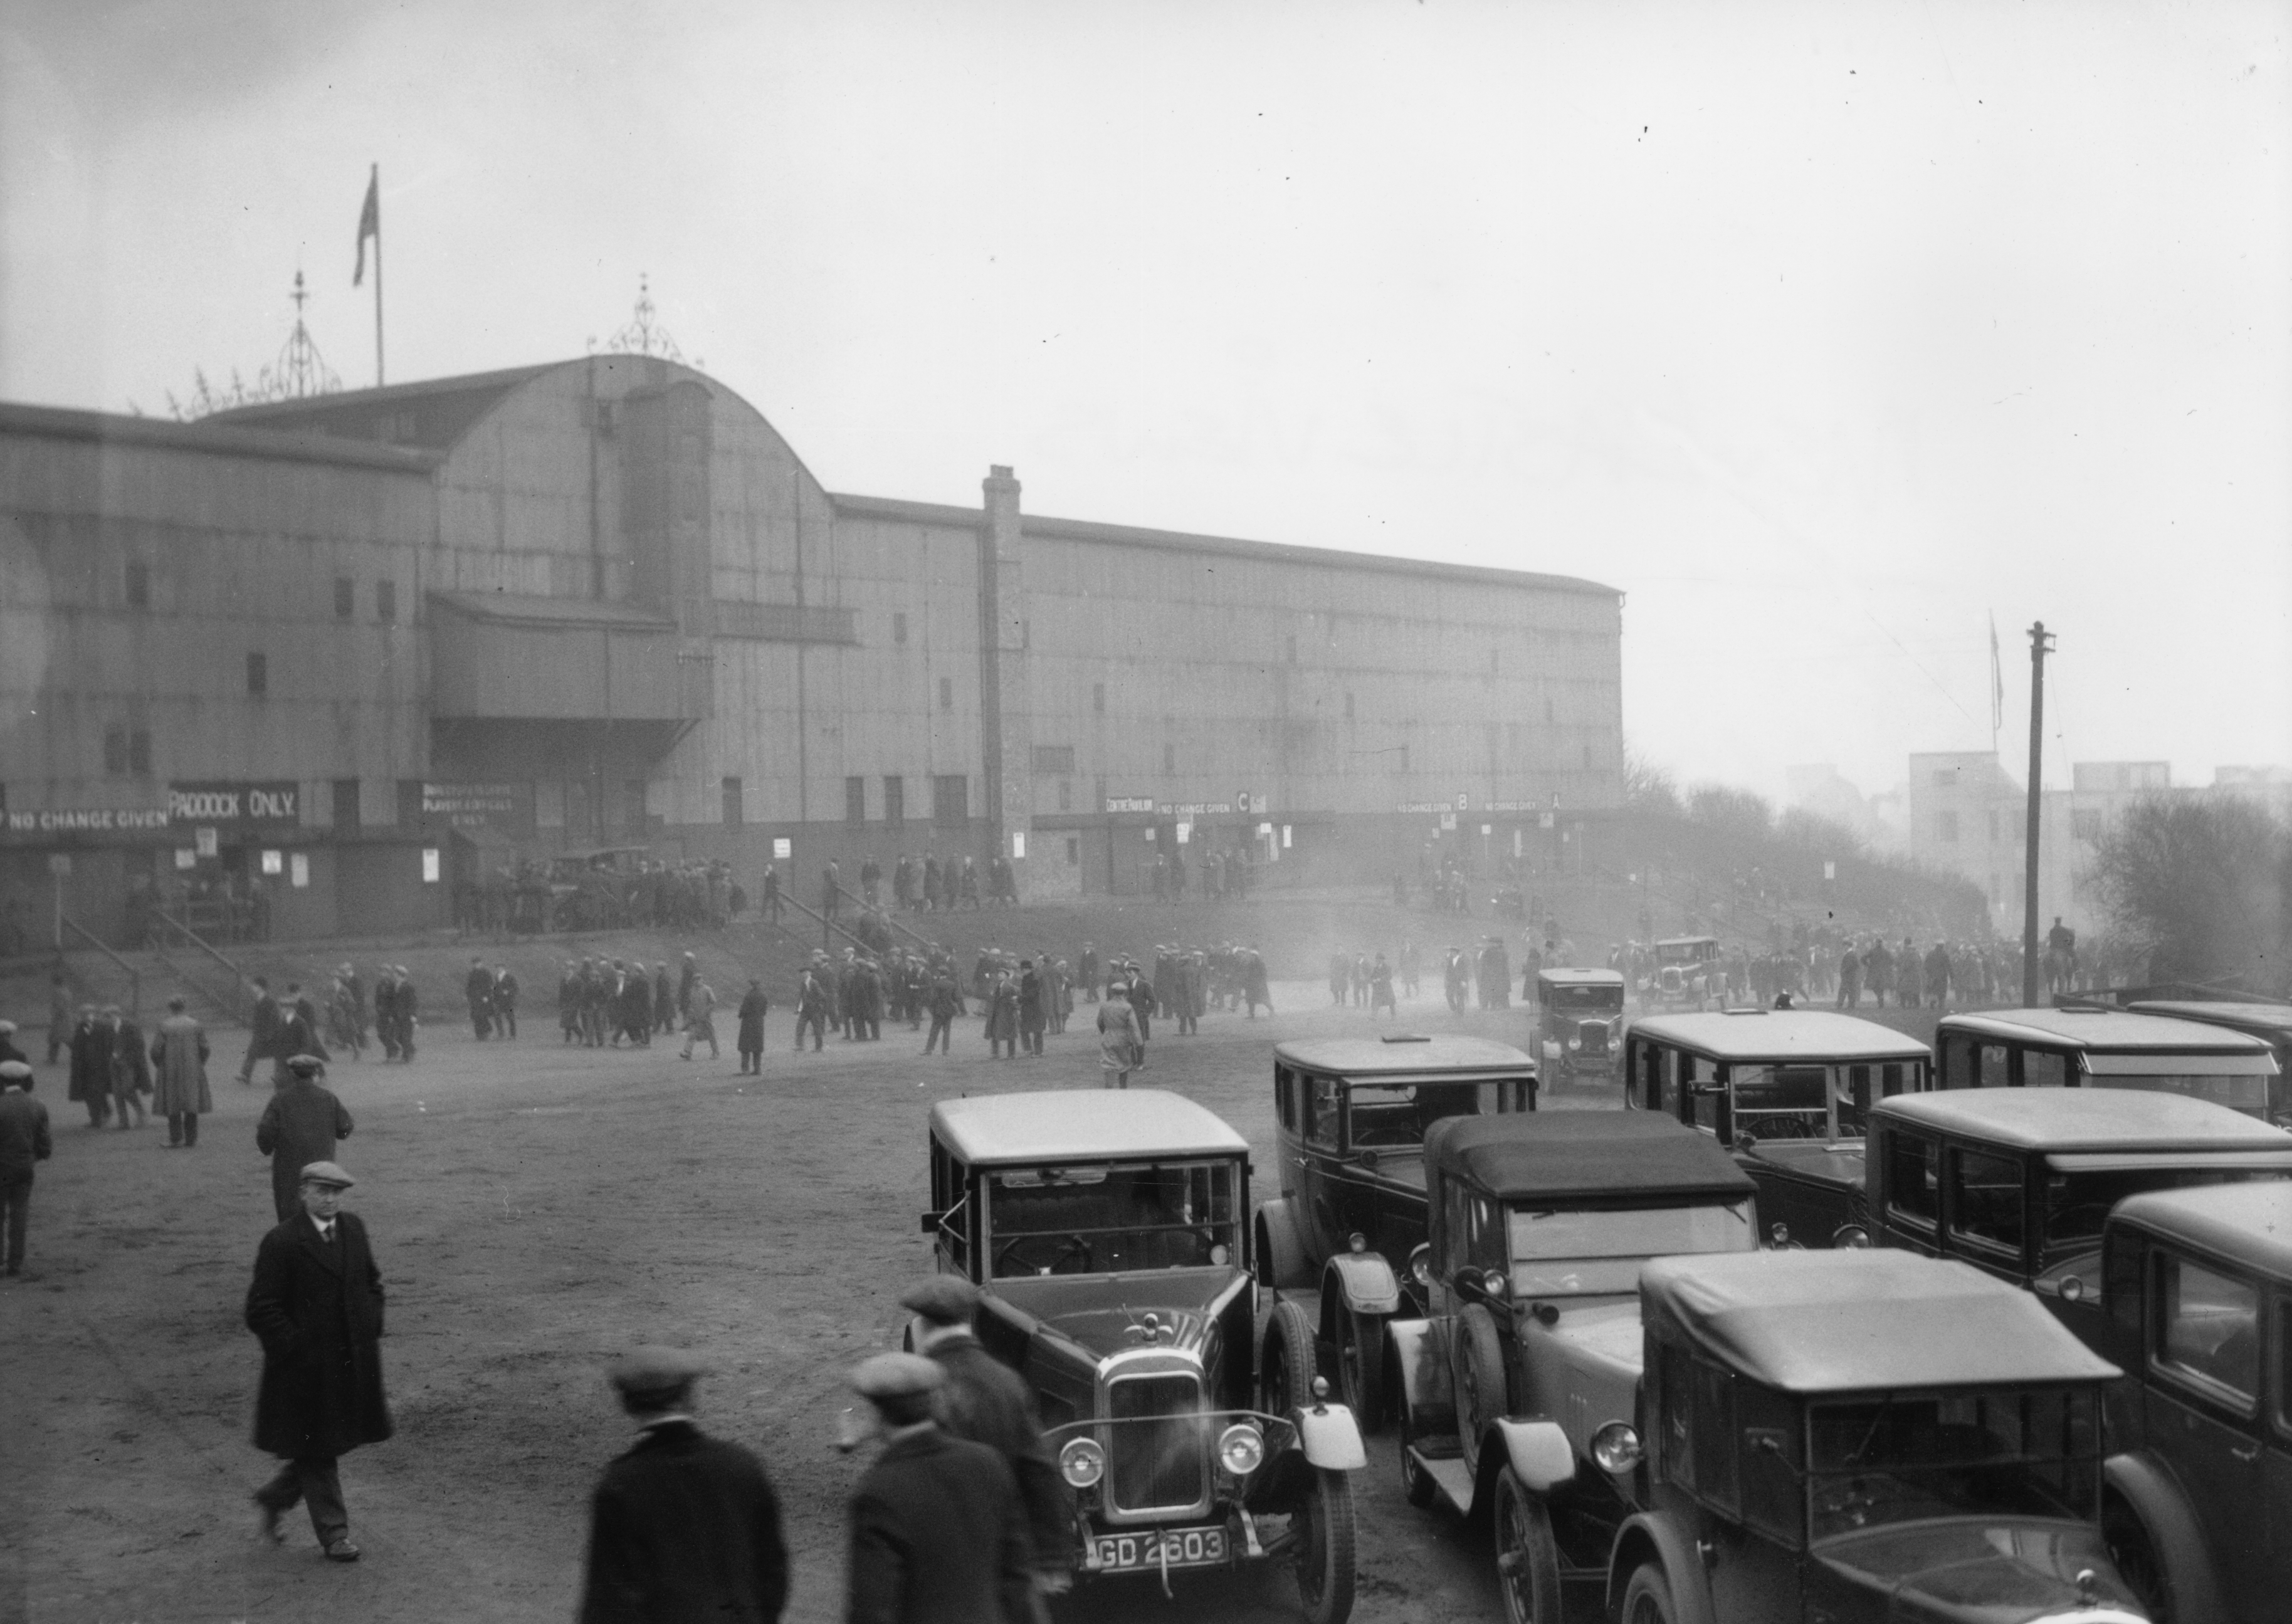 March 1930: Cars parked outside and pedestrians approaching St James Park, home of Newcastle football club. (Photo by Fox Photos/Getty Images)